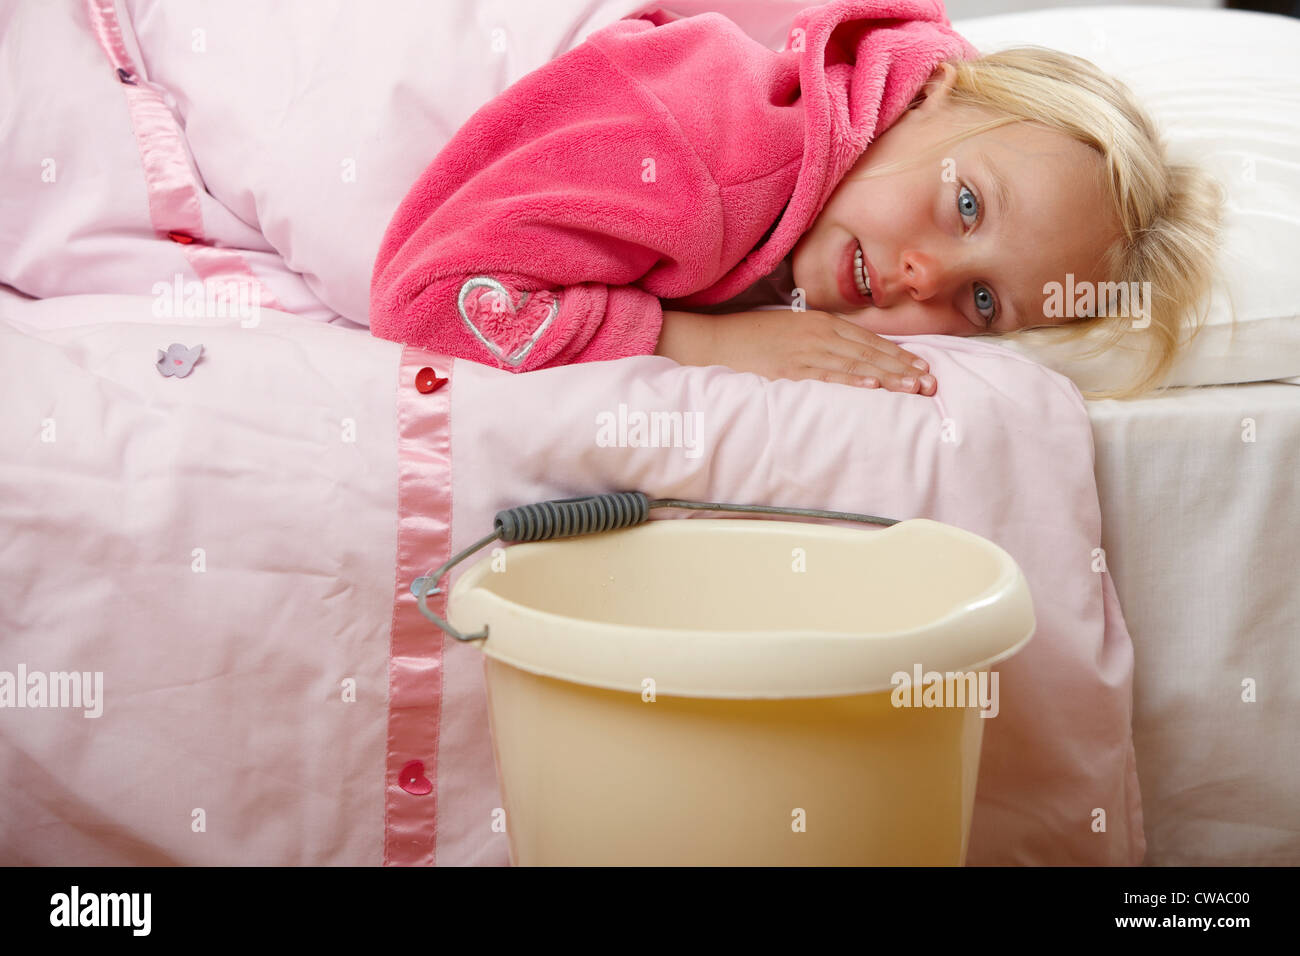 Ill girl in bed with bucket - Stock Image